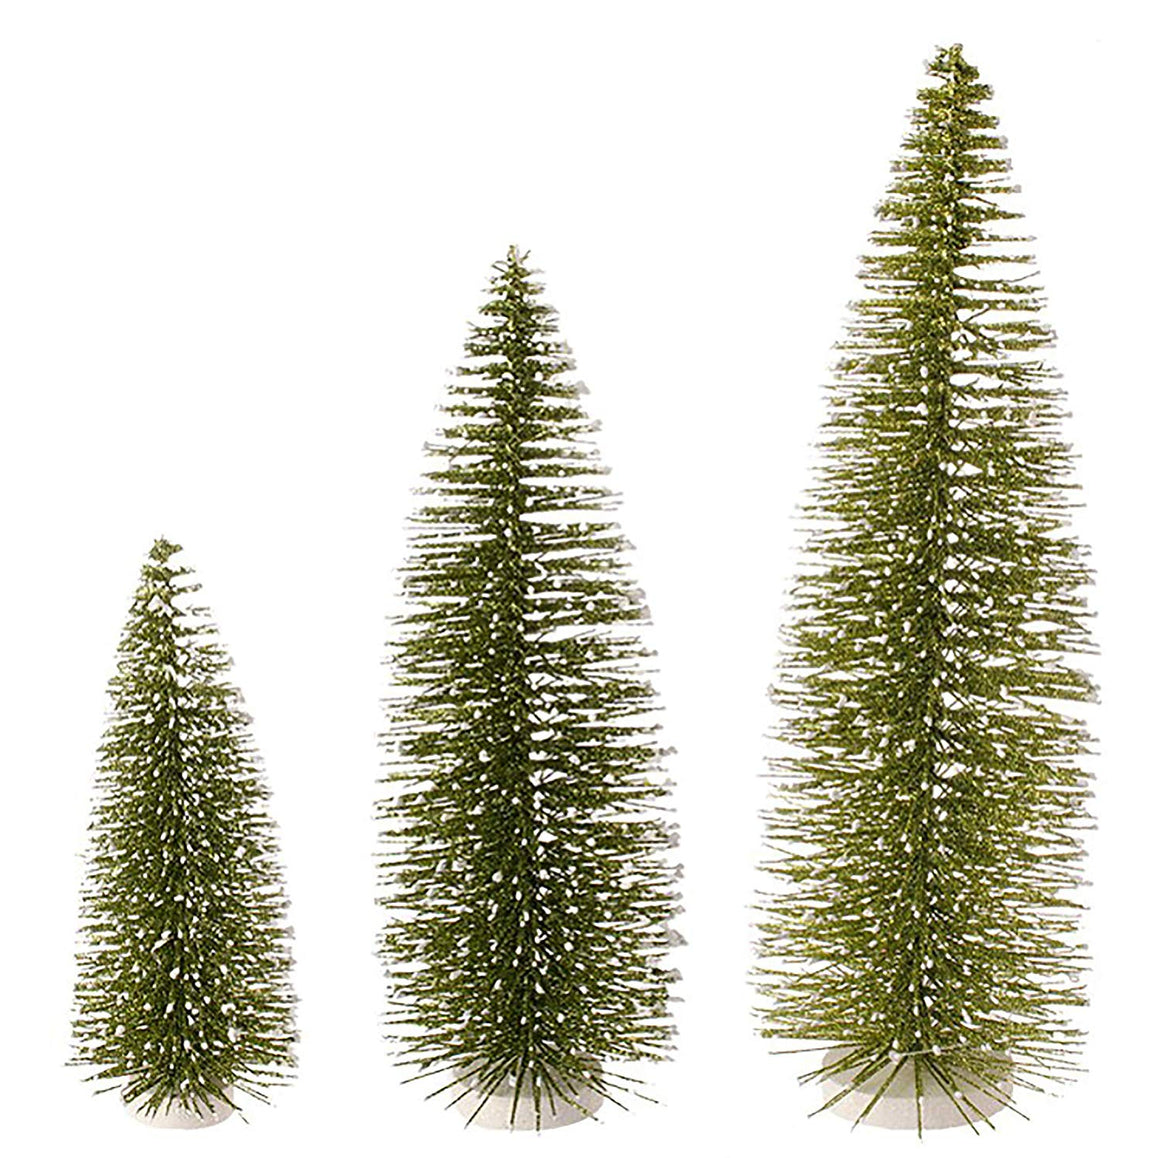 Raz Set of 3 Green Sparkled Bottle Brush Christmas Trees - 9.5, 13.5 and 18 Inches High